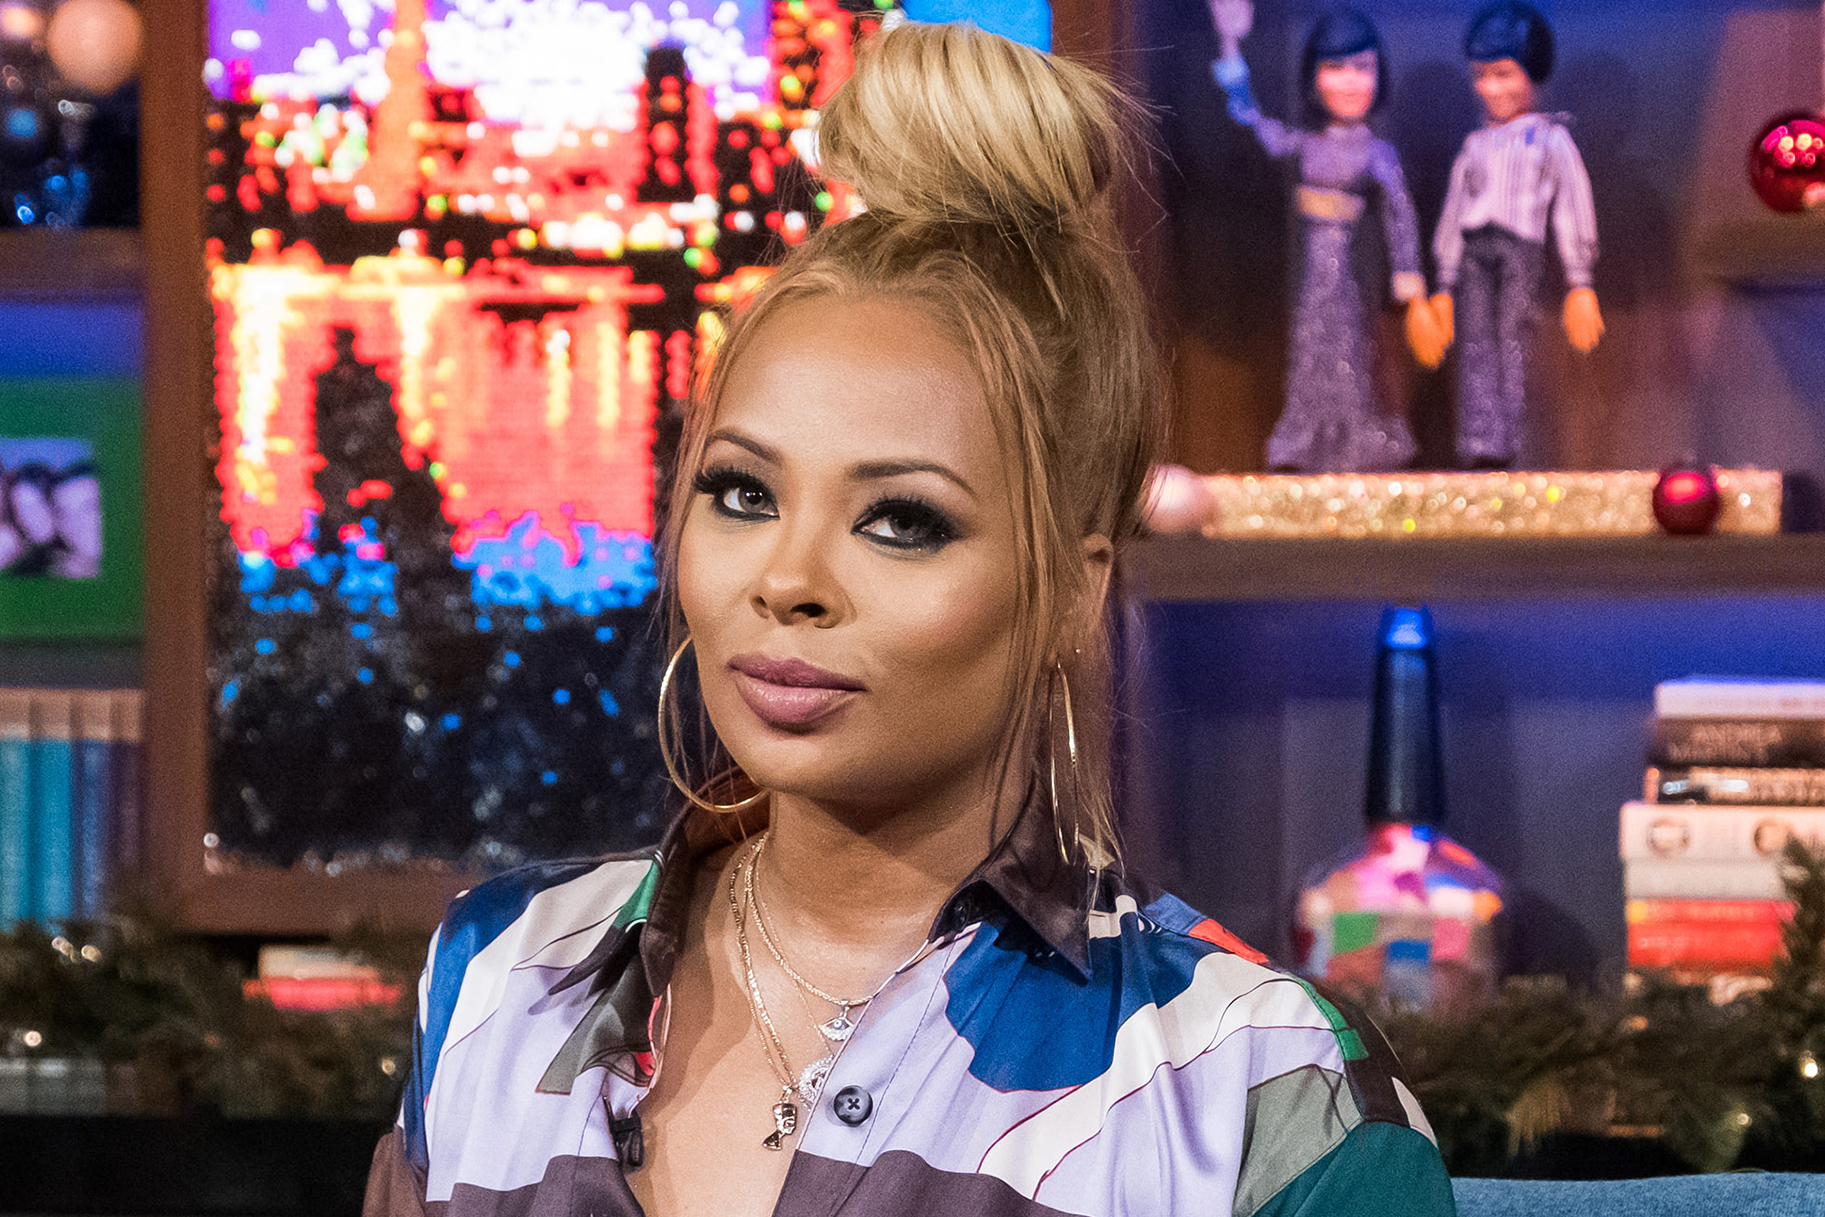 eva-marcille-shows-fans-she-is-a-true-queen-in-this-recent-photo